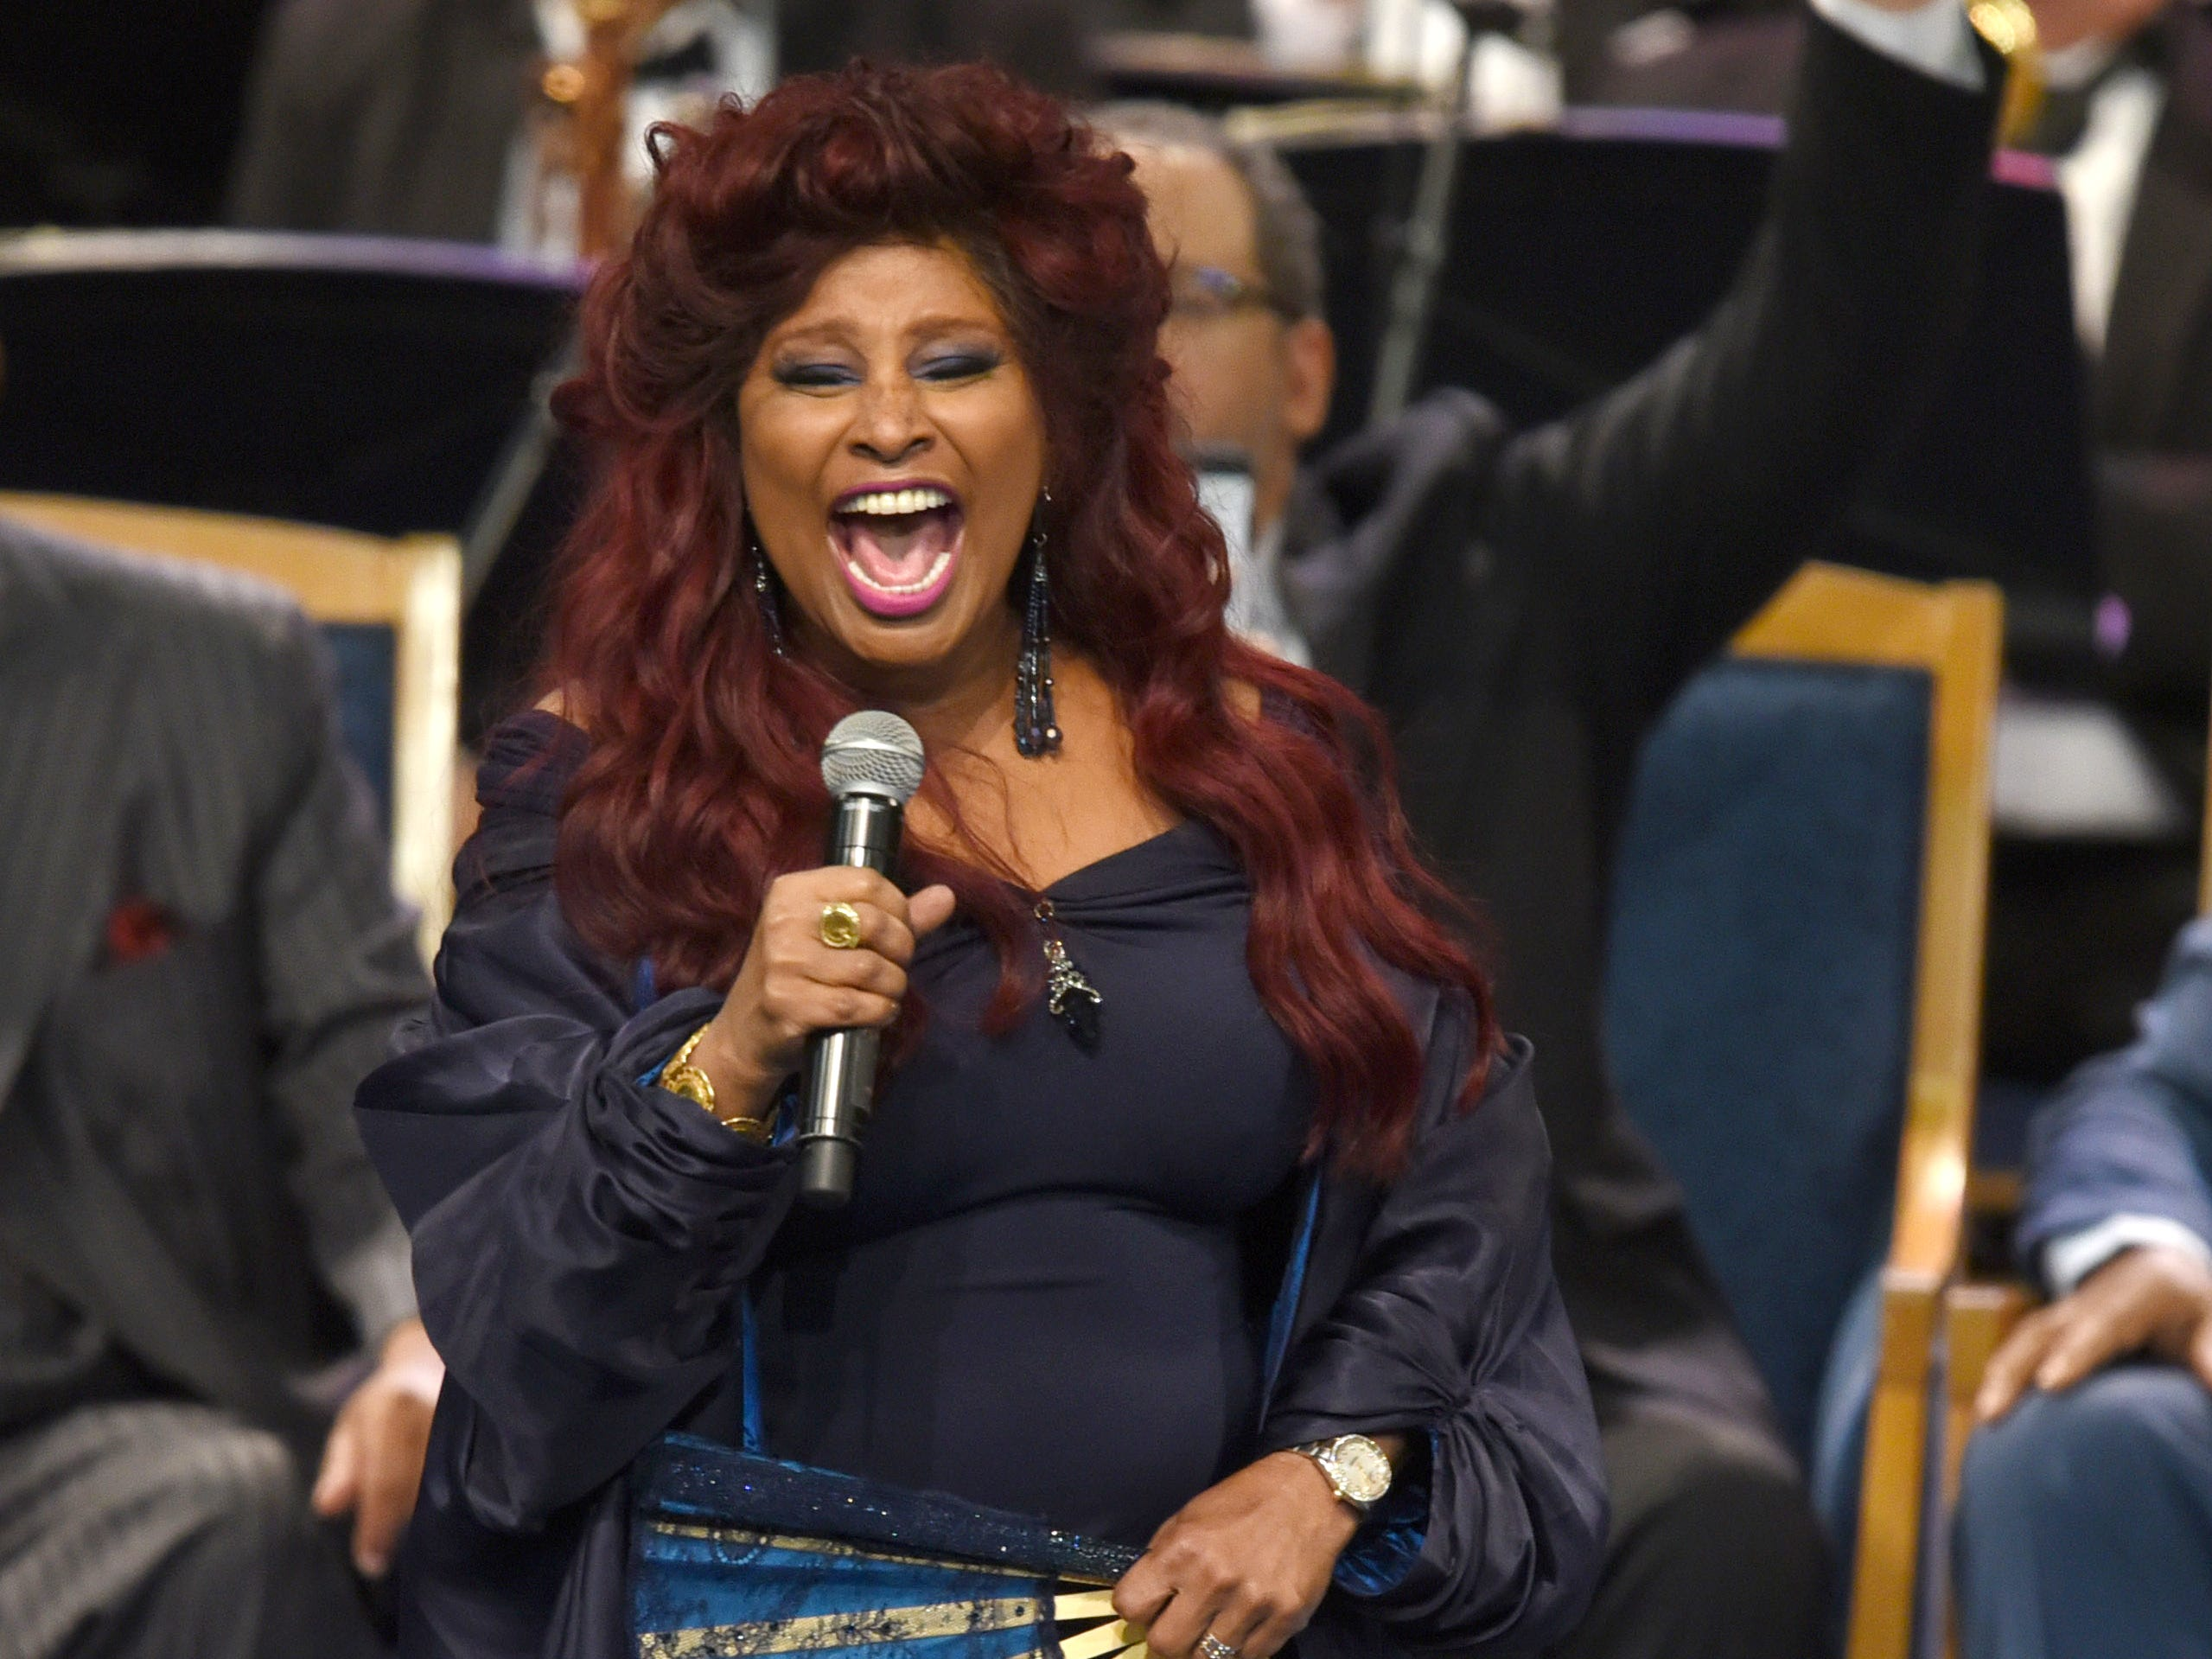 Chaka Khan  performs in tribute to Aretha Franklin at her memorial service in Detroit.